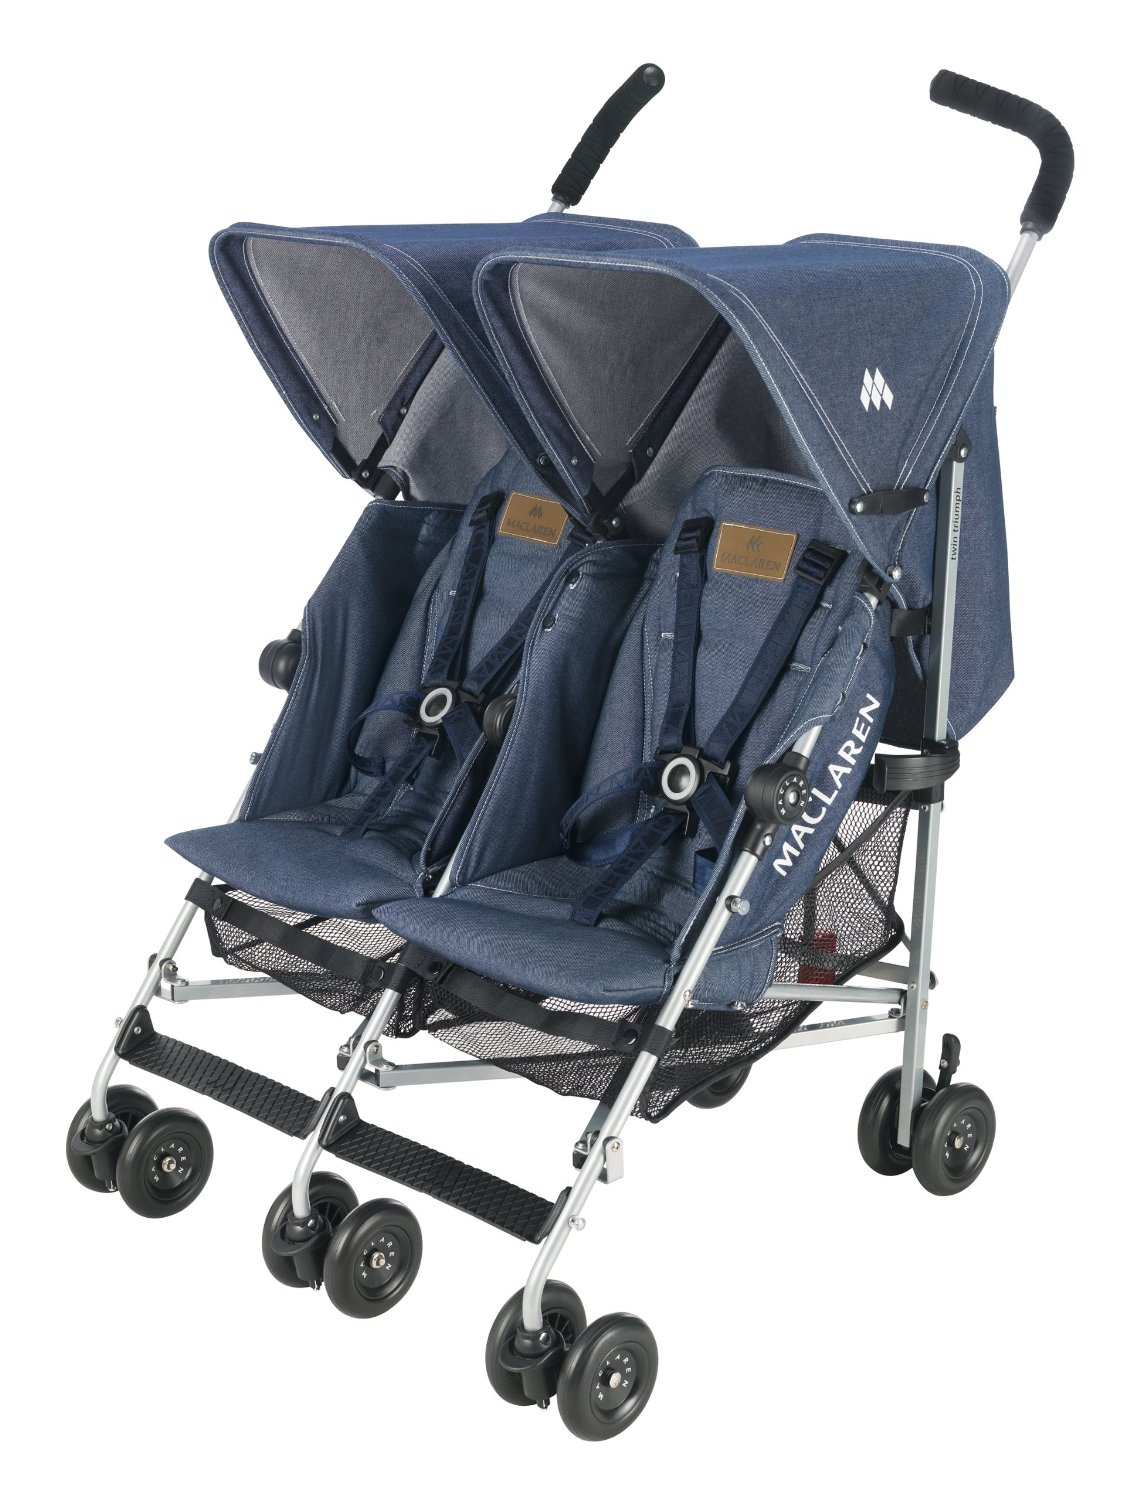 best double umbrella stroller great for kids. Black Bedroom Furniture Sets. Home Design Ideas